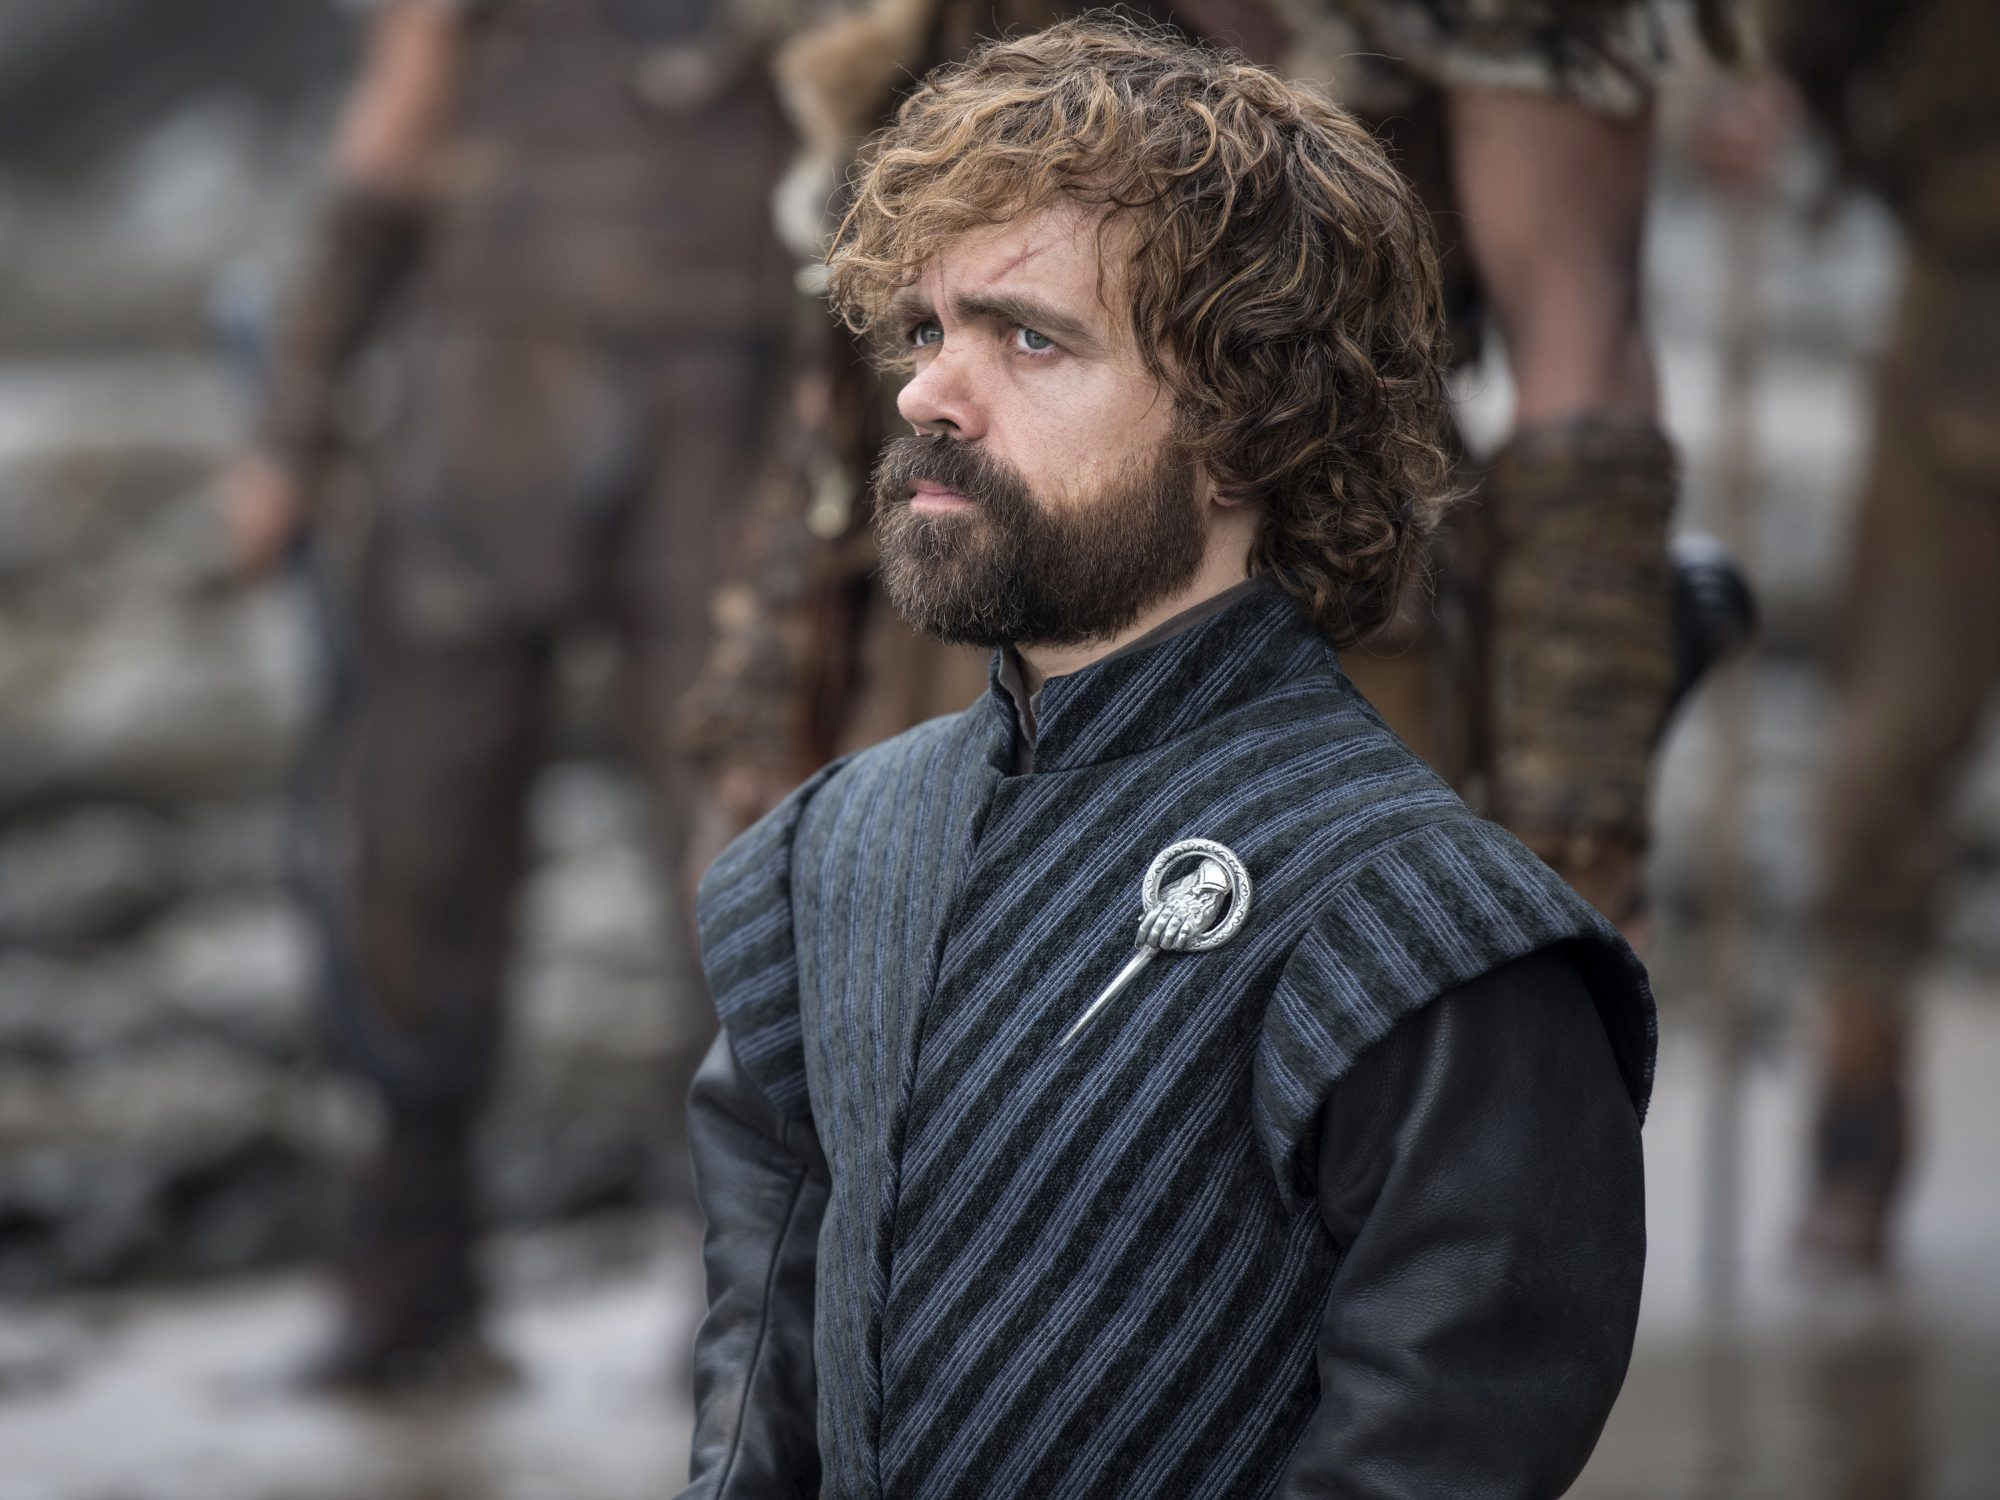 The <em>Game of Thrones</em> Finale's Director Just Weighed in on That Cryptic Tyrion Scene